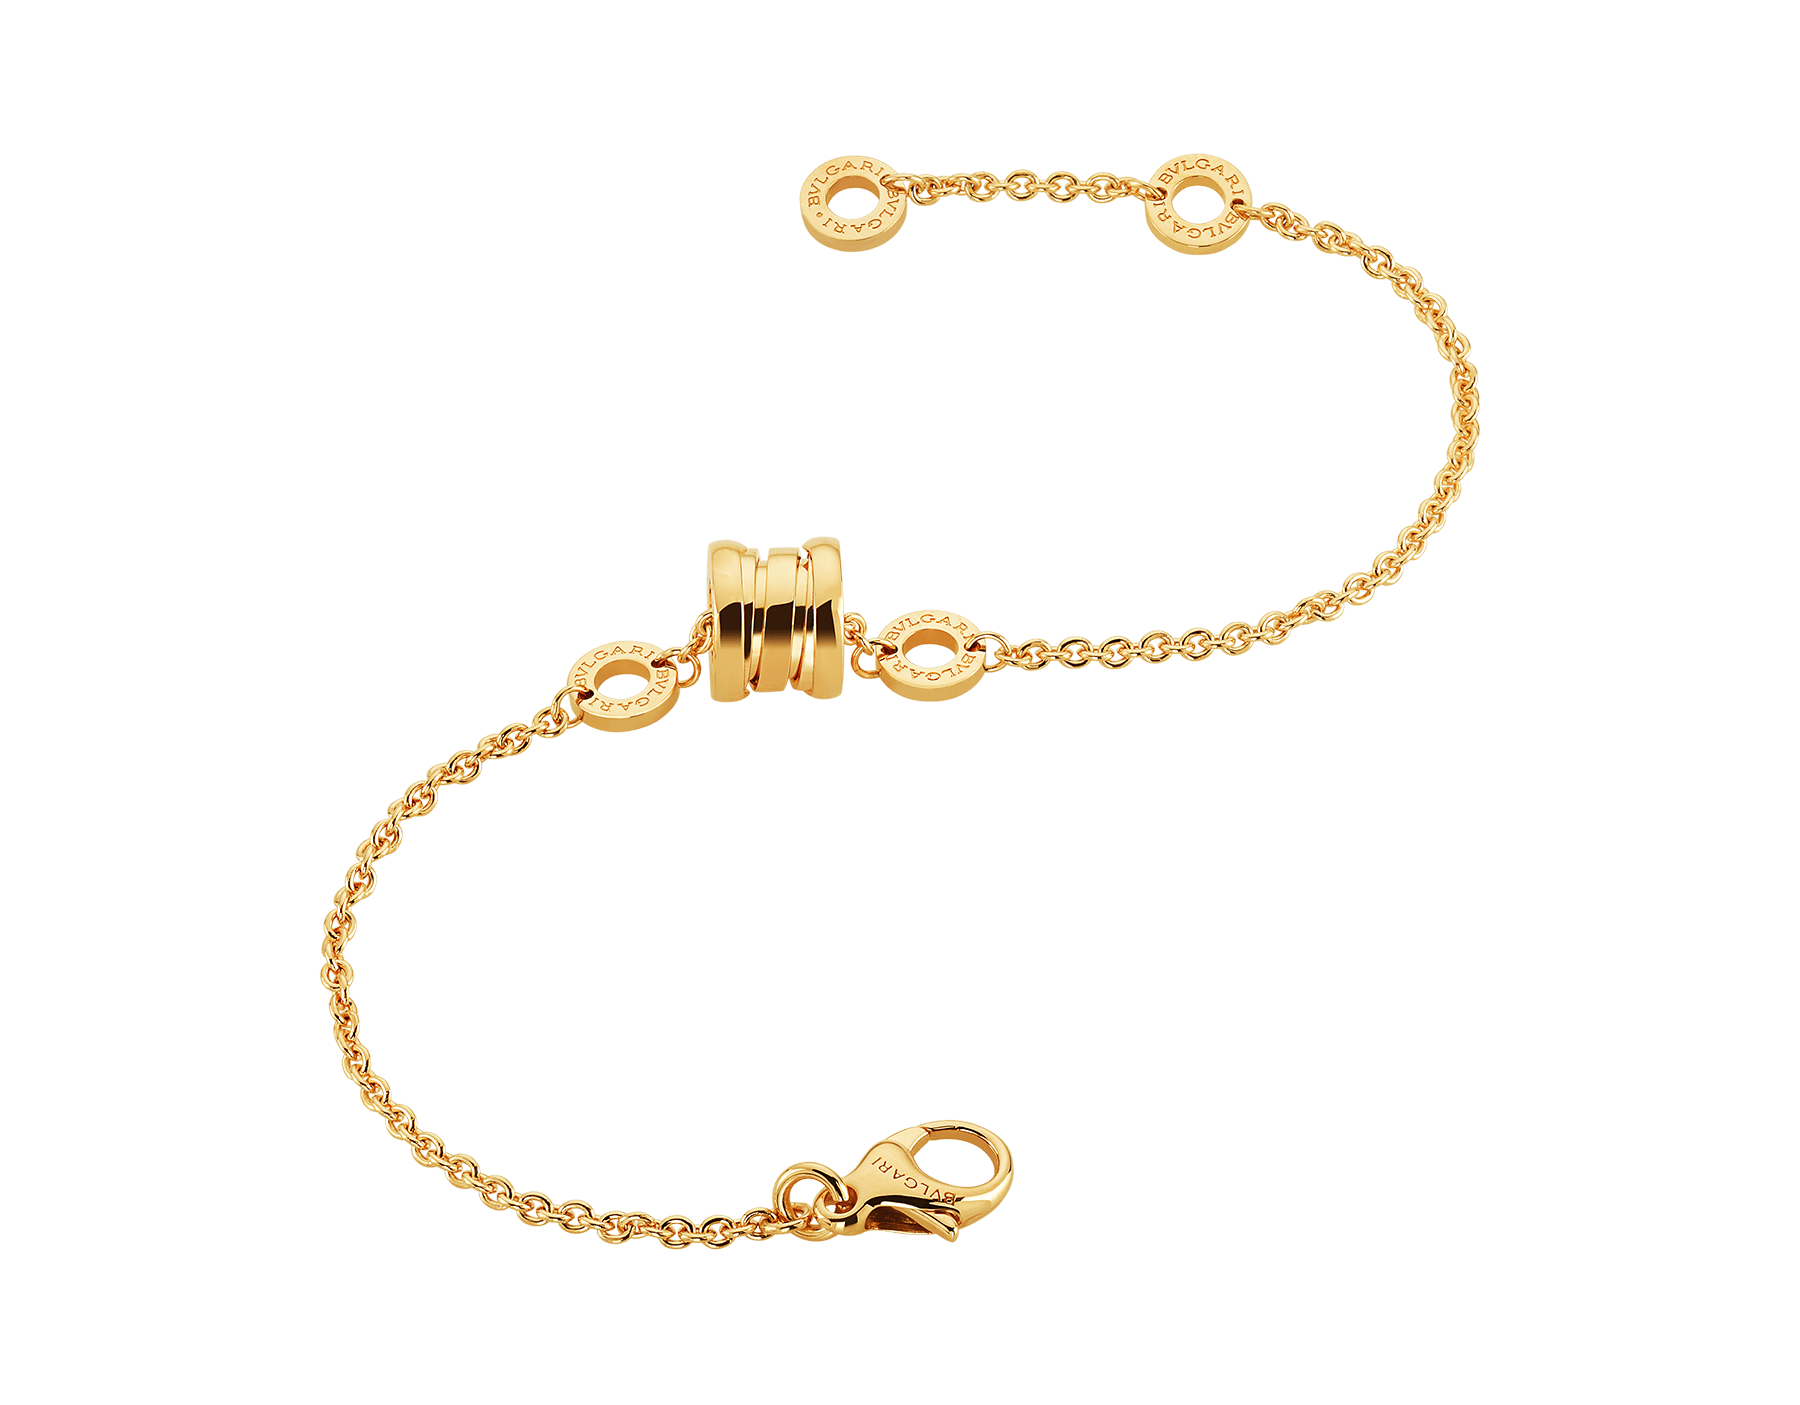 B.zero1 soft bracelet in 18kt yellow gold. BR853667 image 2